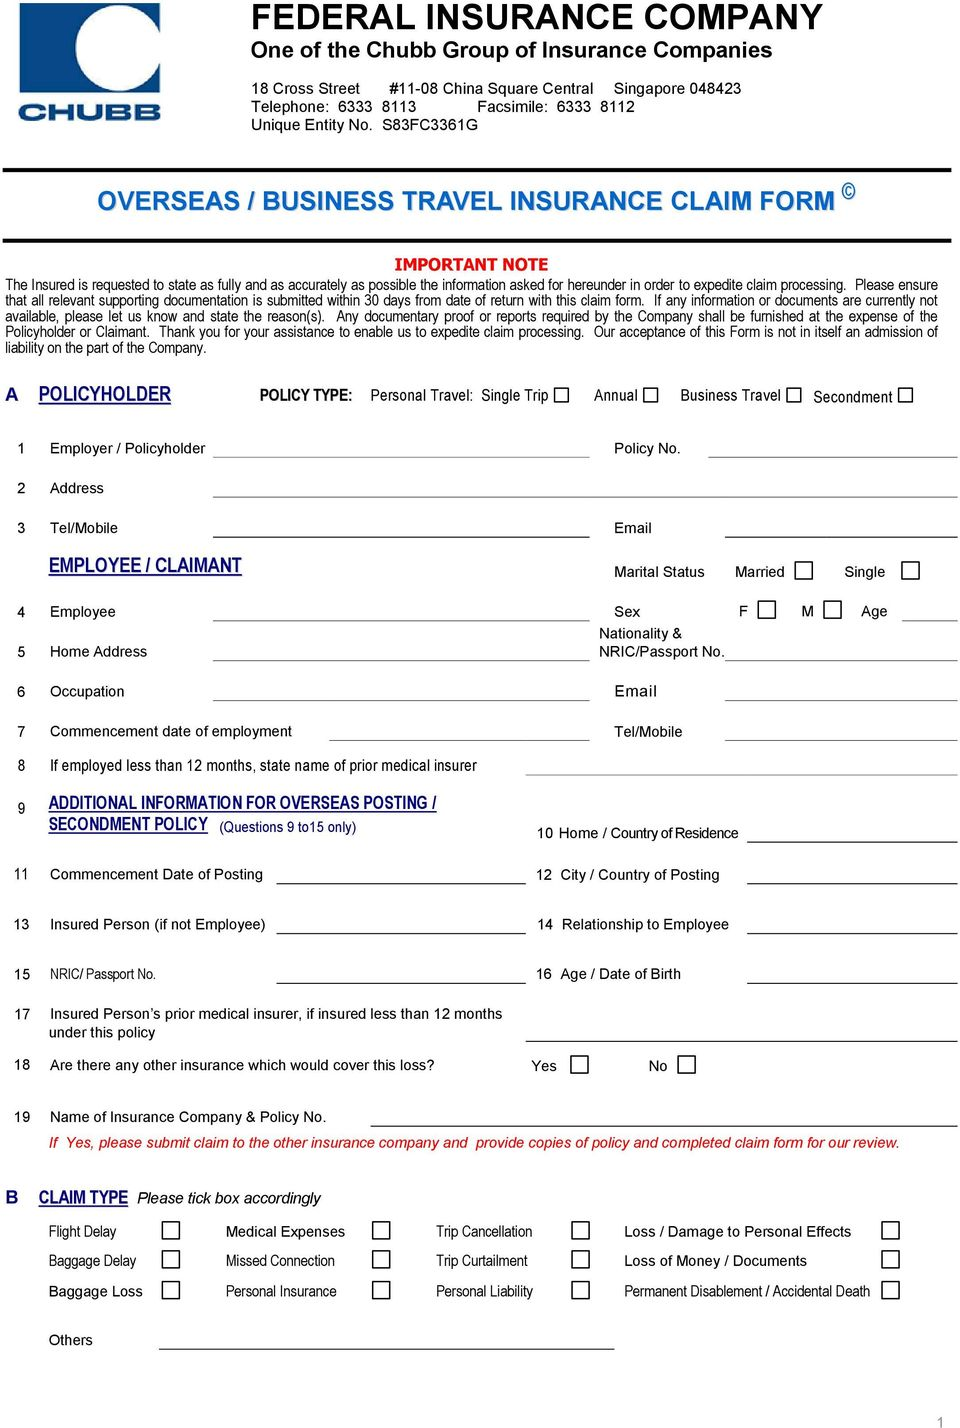 expedite claim processing. Please ensure that all relevant supporting documentation is submitted within 30 days from date of return with this claim form.